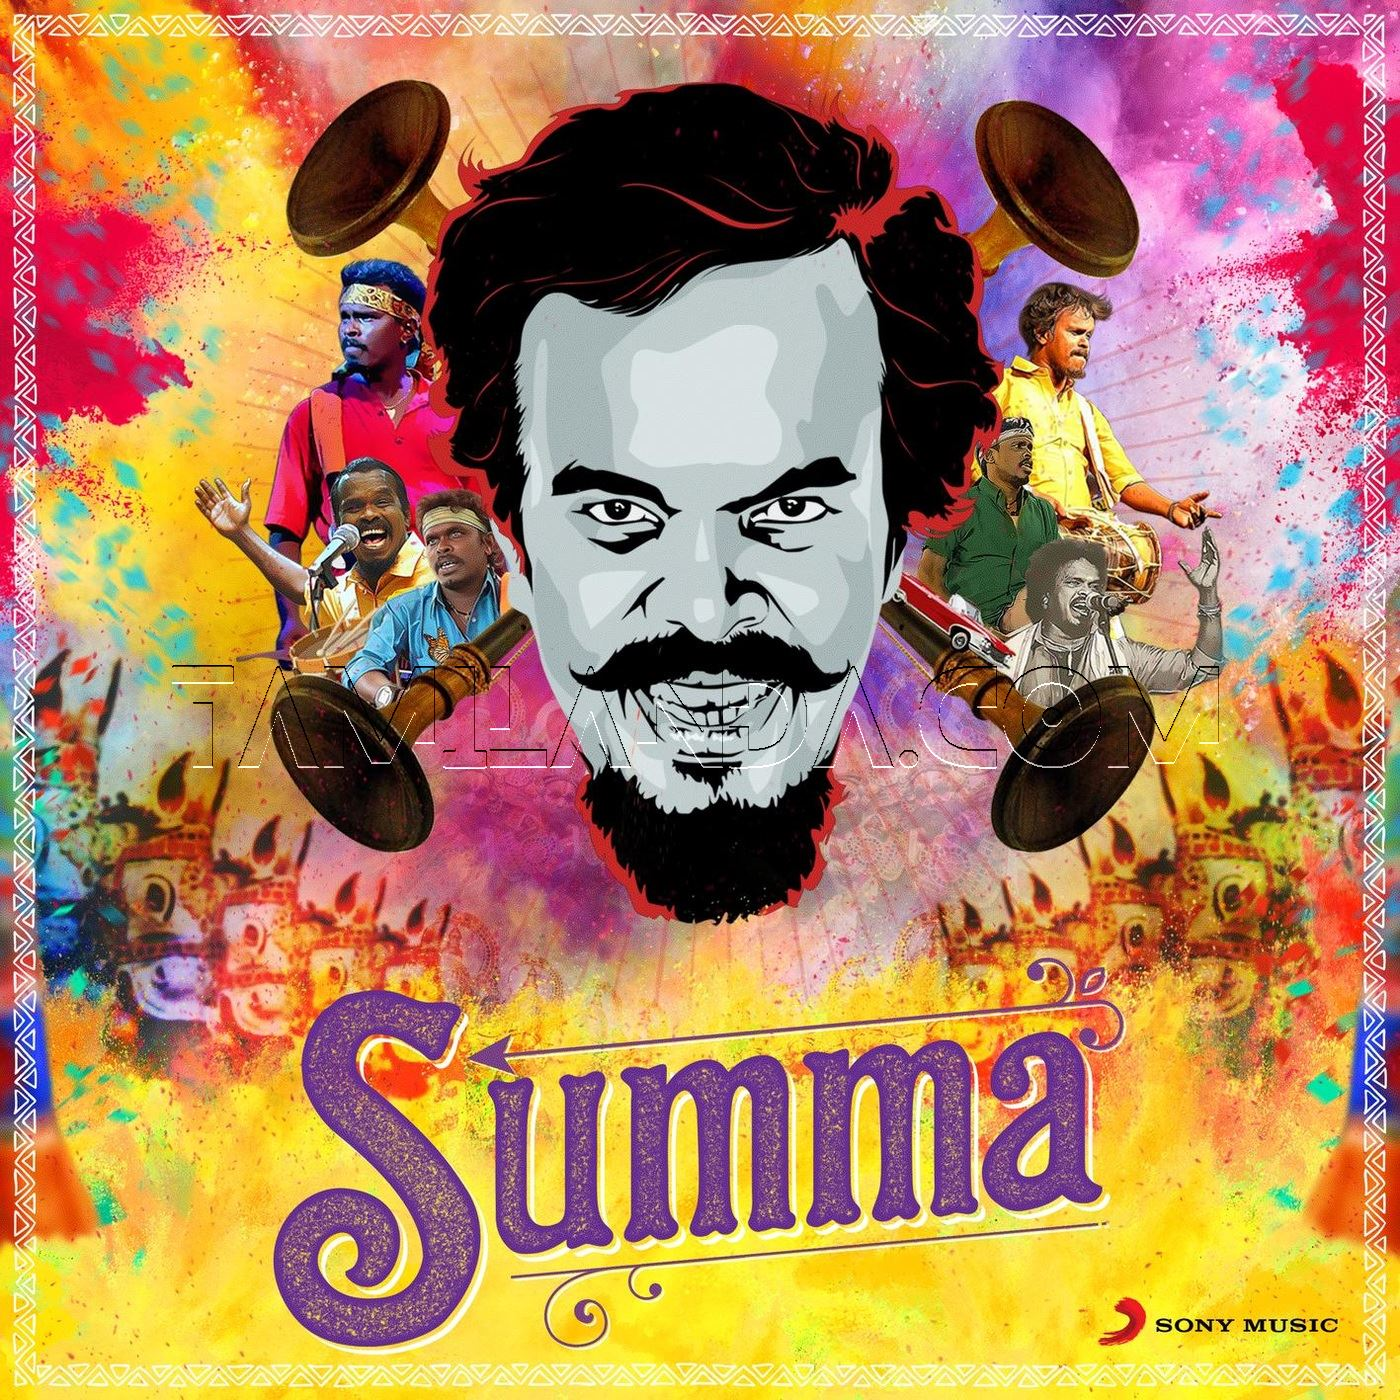 Summa – Single FLAC Song (2019)